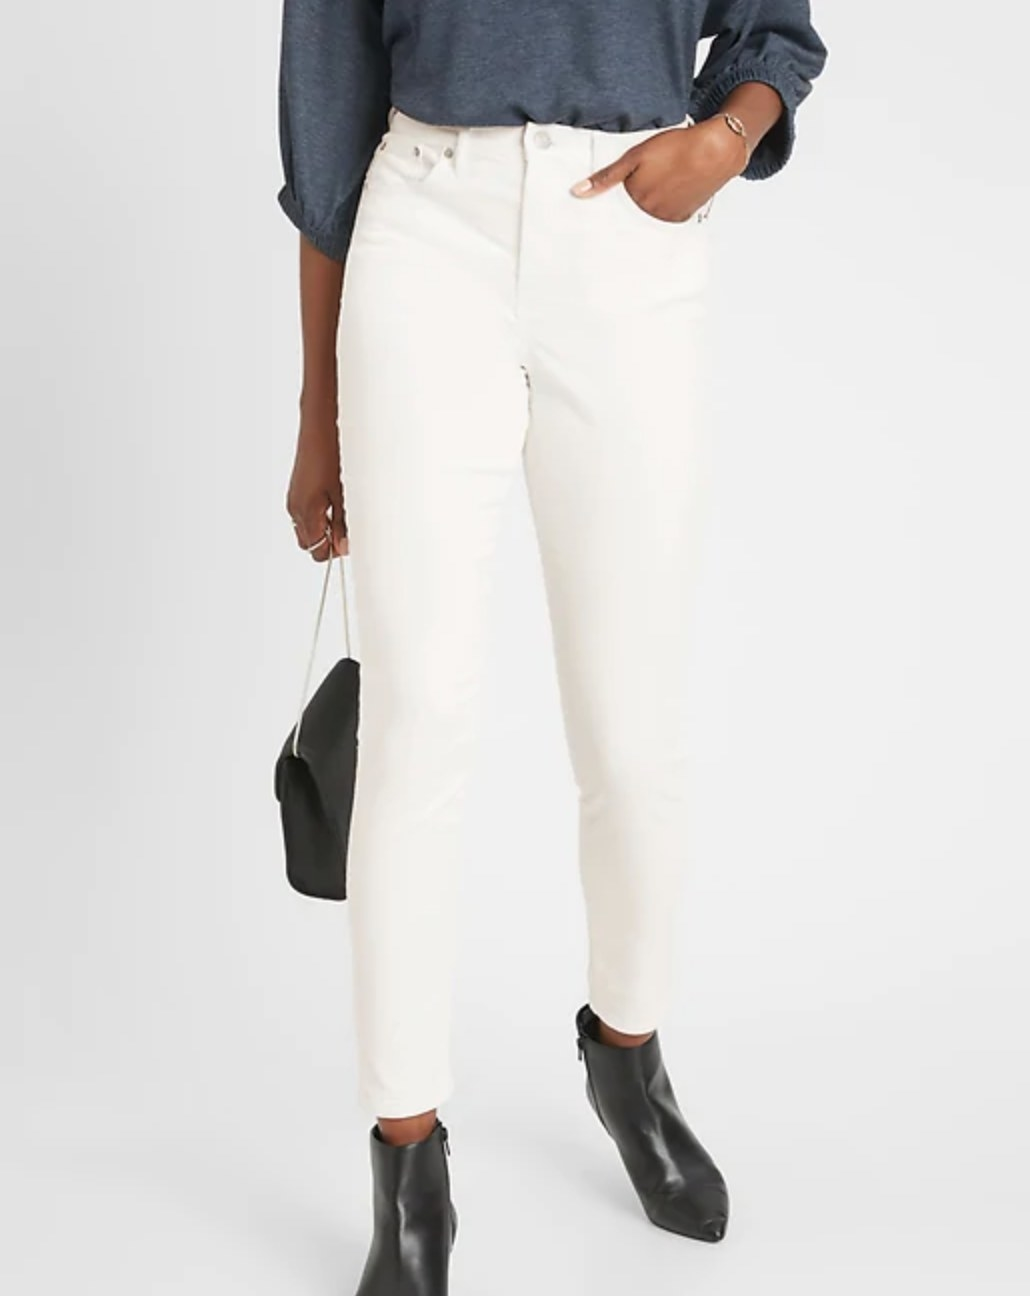 The high-rise uncut cord skinny jeans